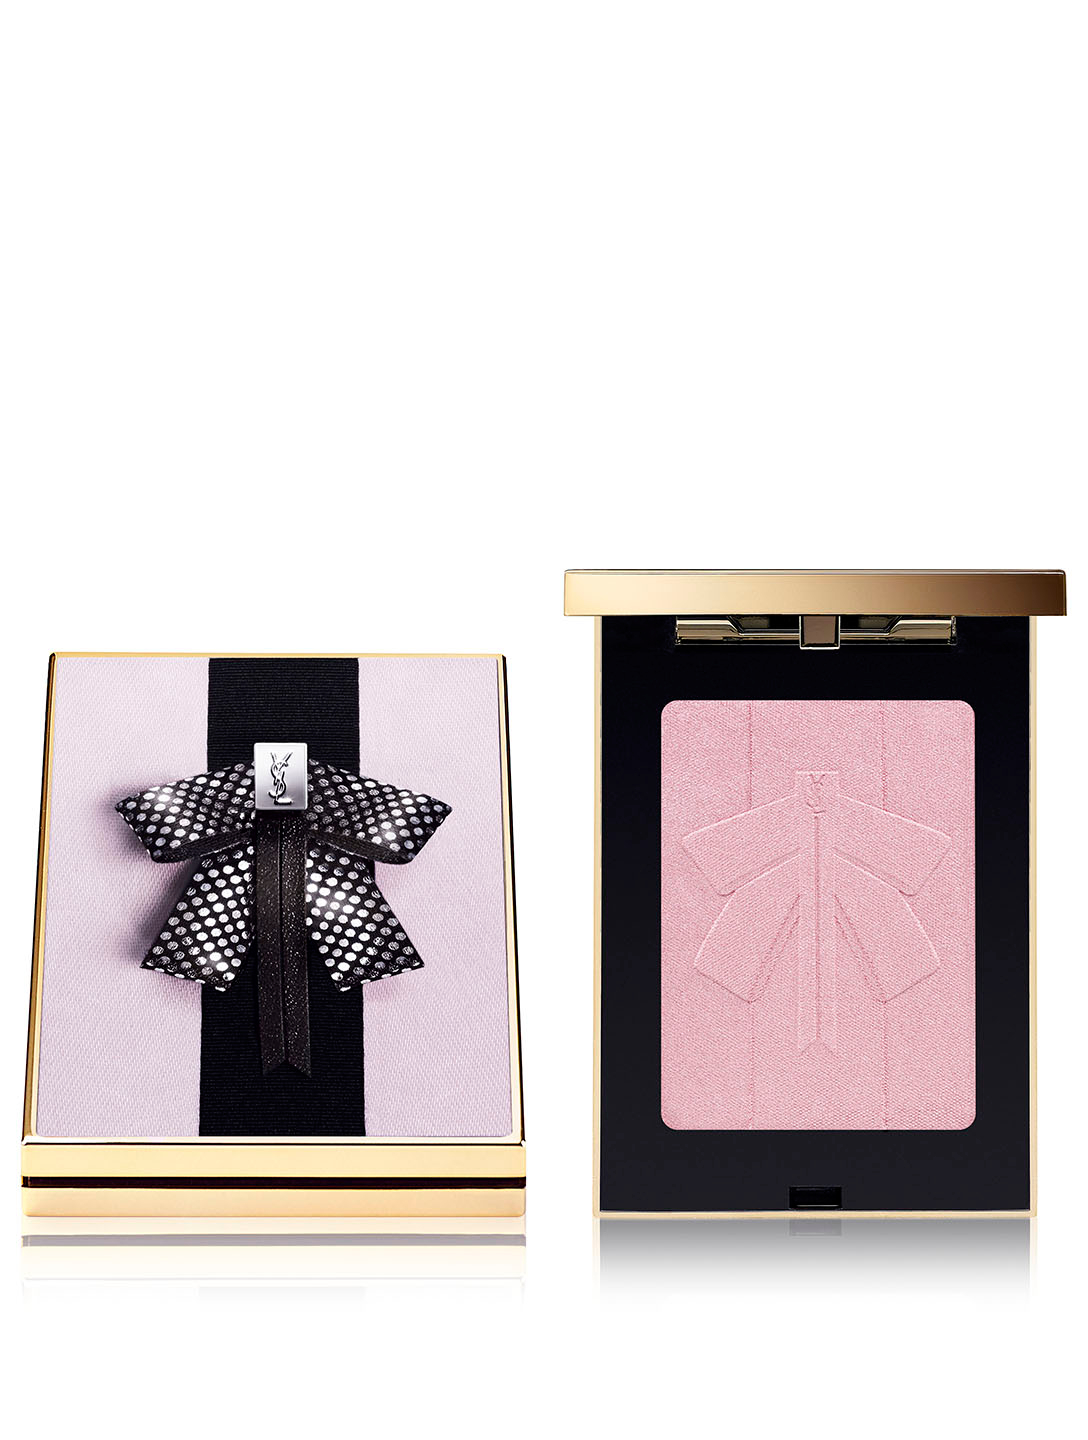 YVES SAINT LAURENT Mon Paris Couture Palette Highlighting Blush Beauty Pink